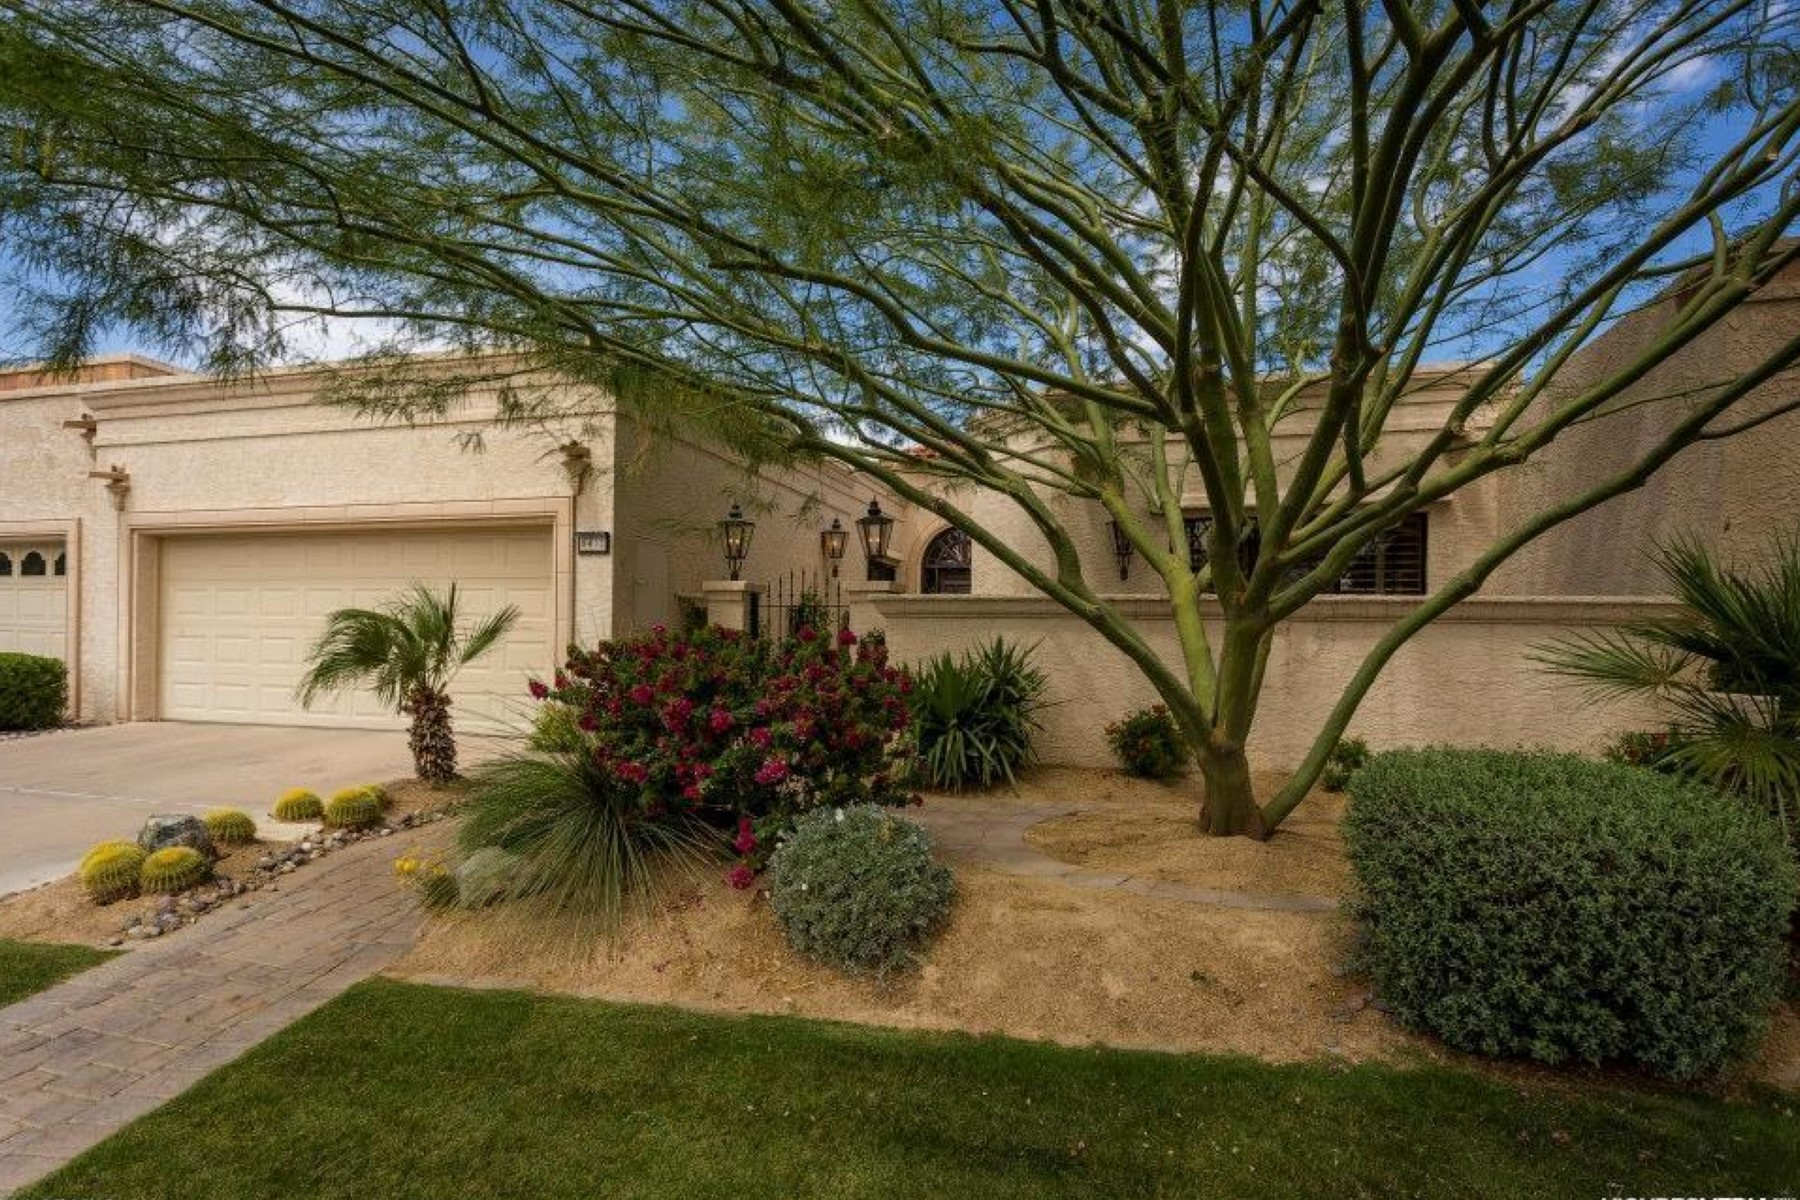 Single Family Home for Sale at Exquisite, Totally Remodeled Luxury Home In The Heart Of McCormick Ranch 8432 E Del Camino Drive Scottsdale, Arizona 85258 United States